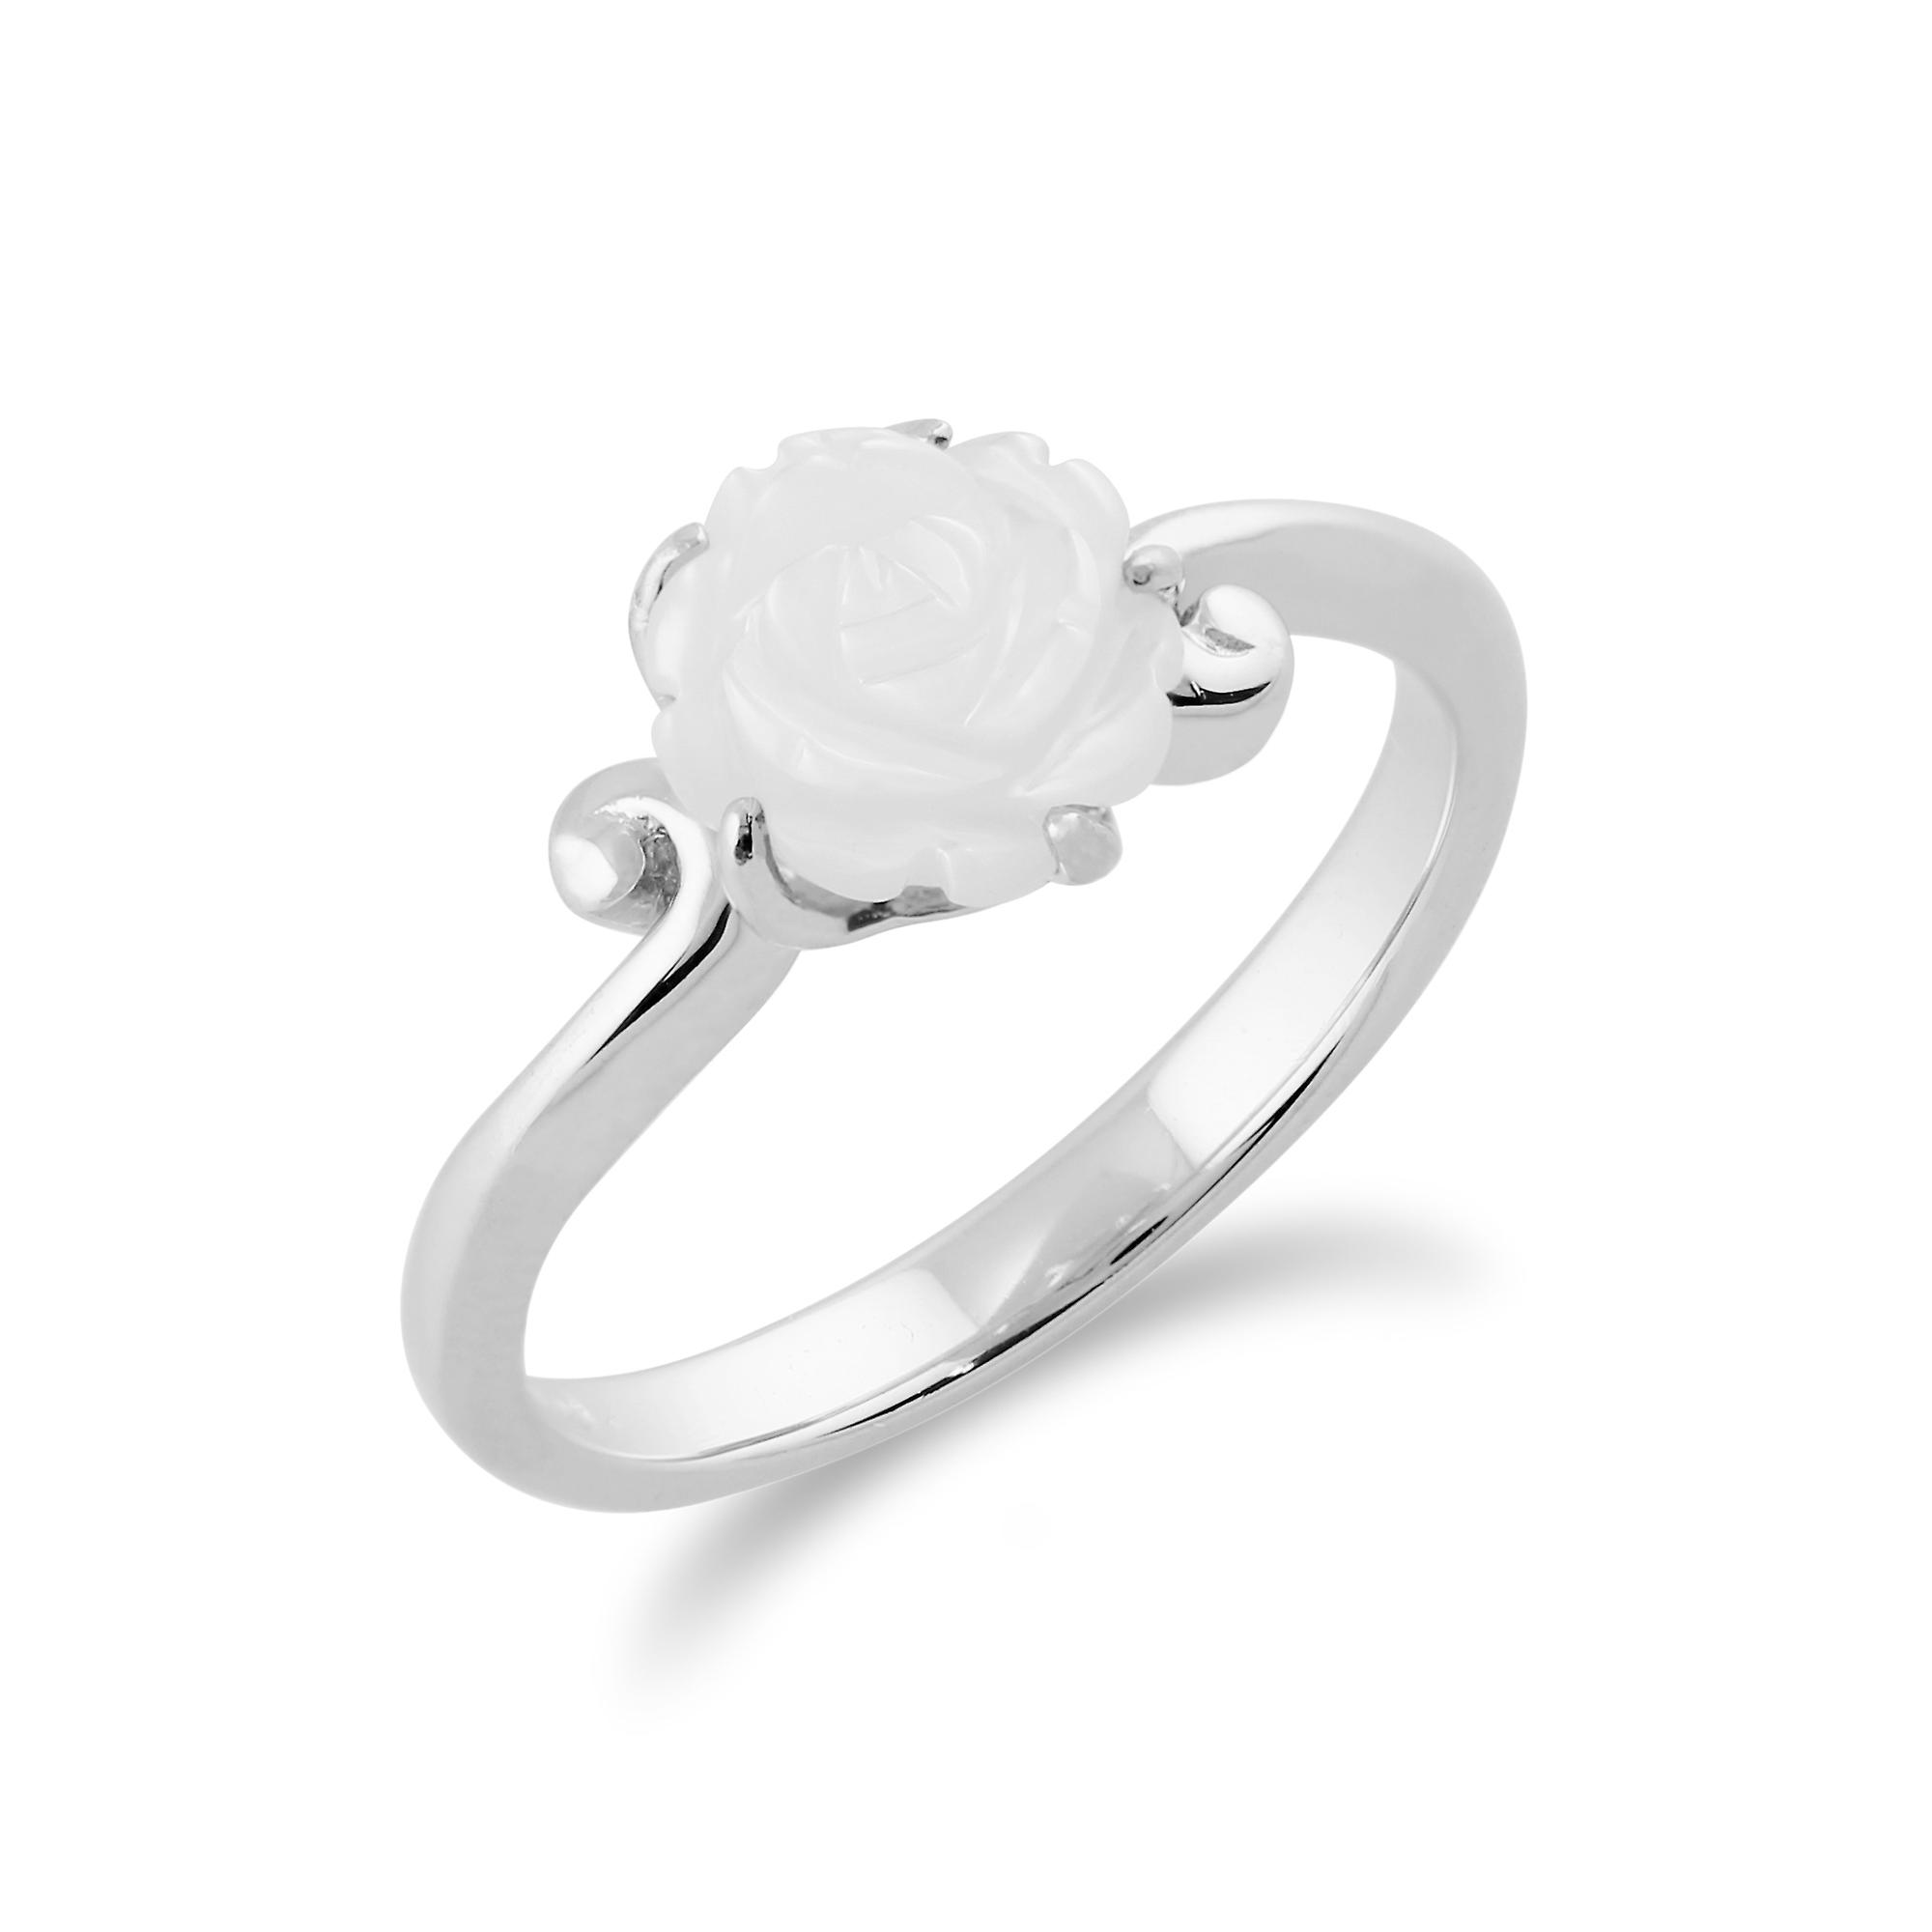 Gemondo 925 Sterling Silver 1ct Mother of Pearl Floral Rose Ring